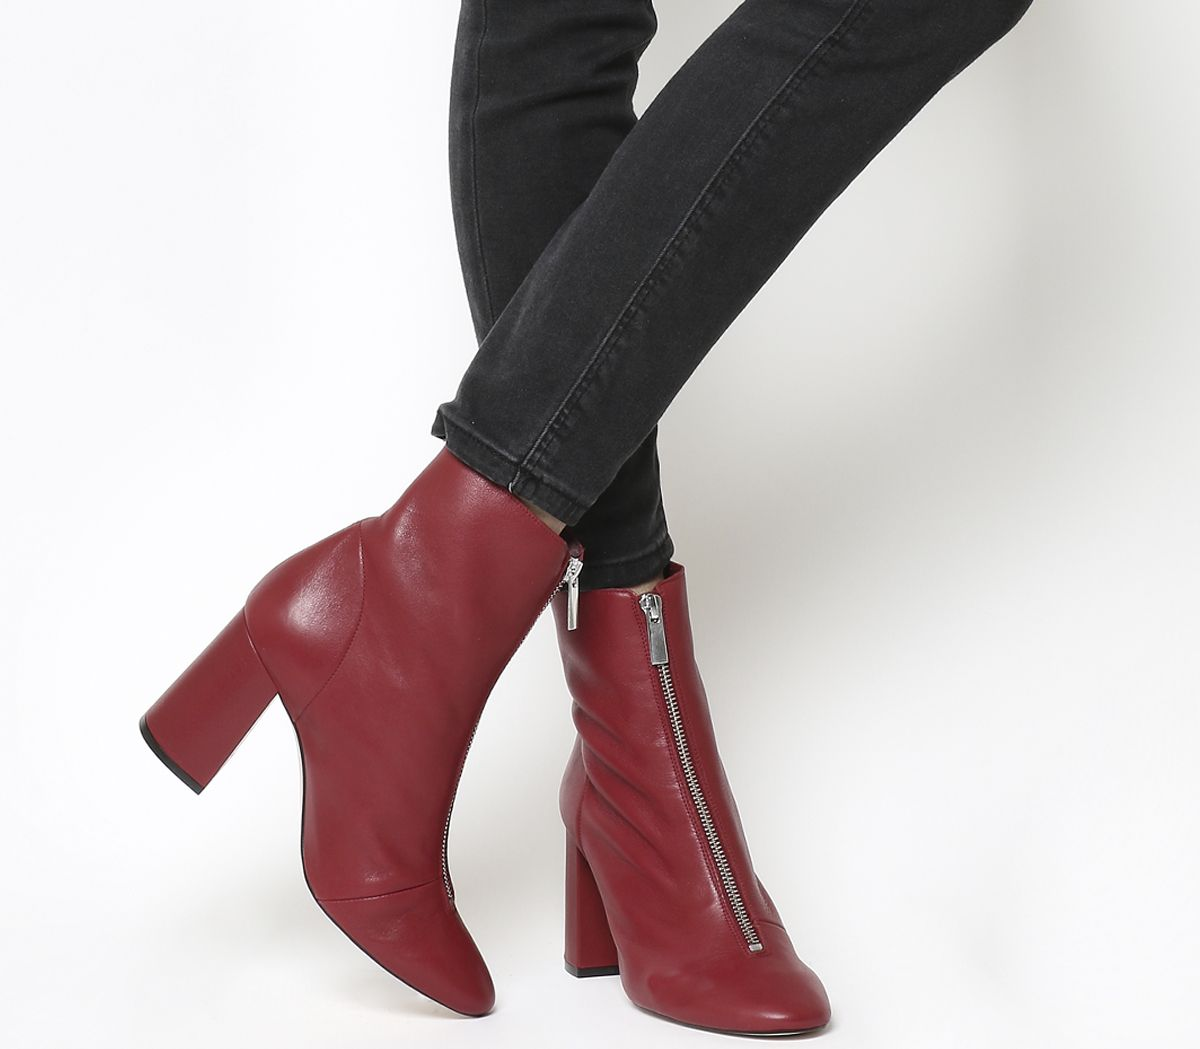 1941ec1961f9 Office All Sorts Front Zip Boots Dark Red Leather - Ankle Boots